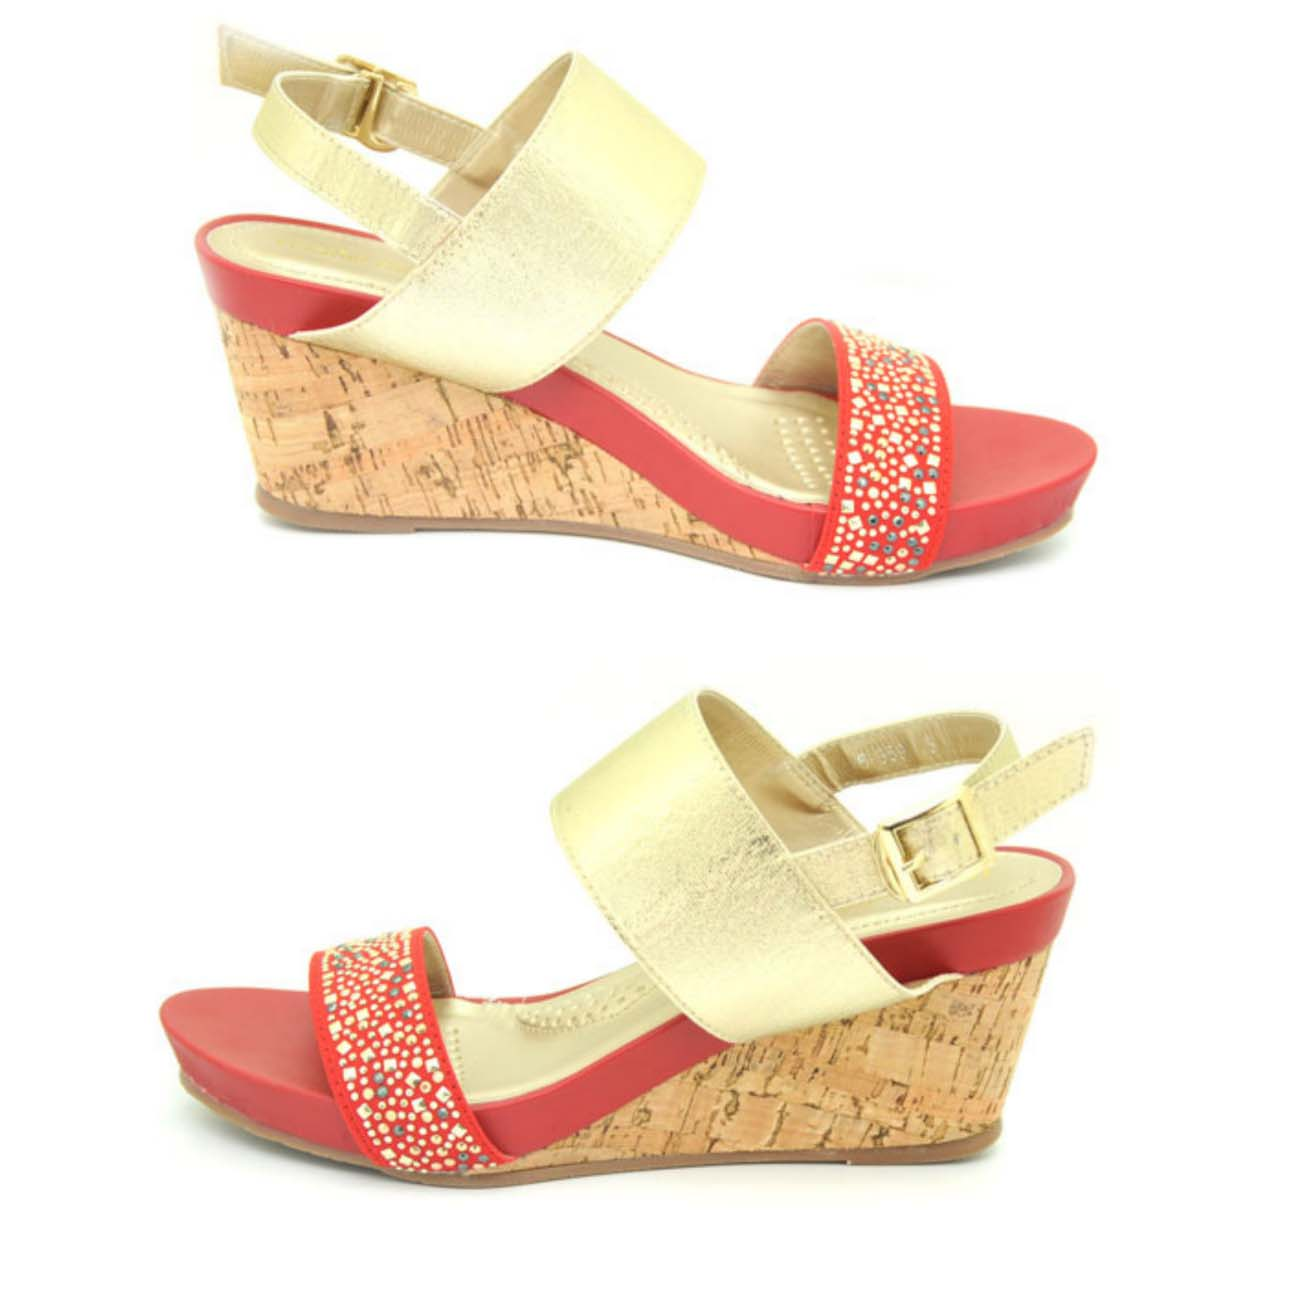 Elegant Bata Shoes Summer Causal Wear Collection 2016 For Ladies Women Girls